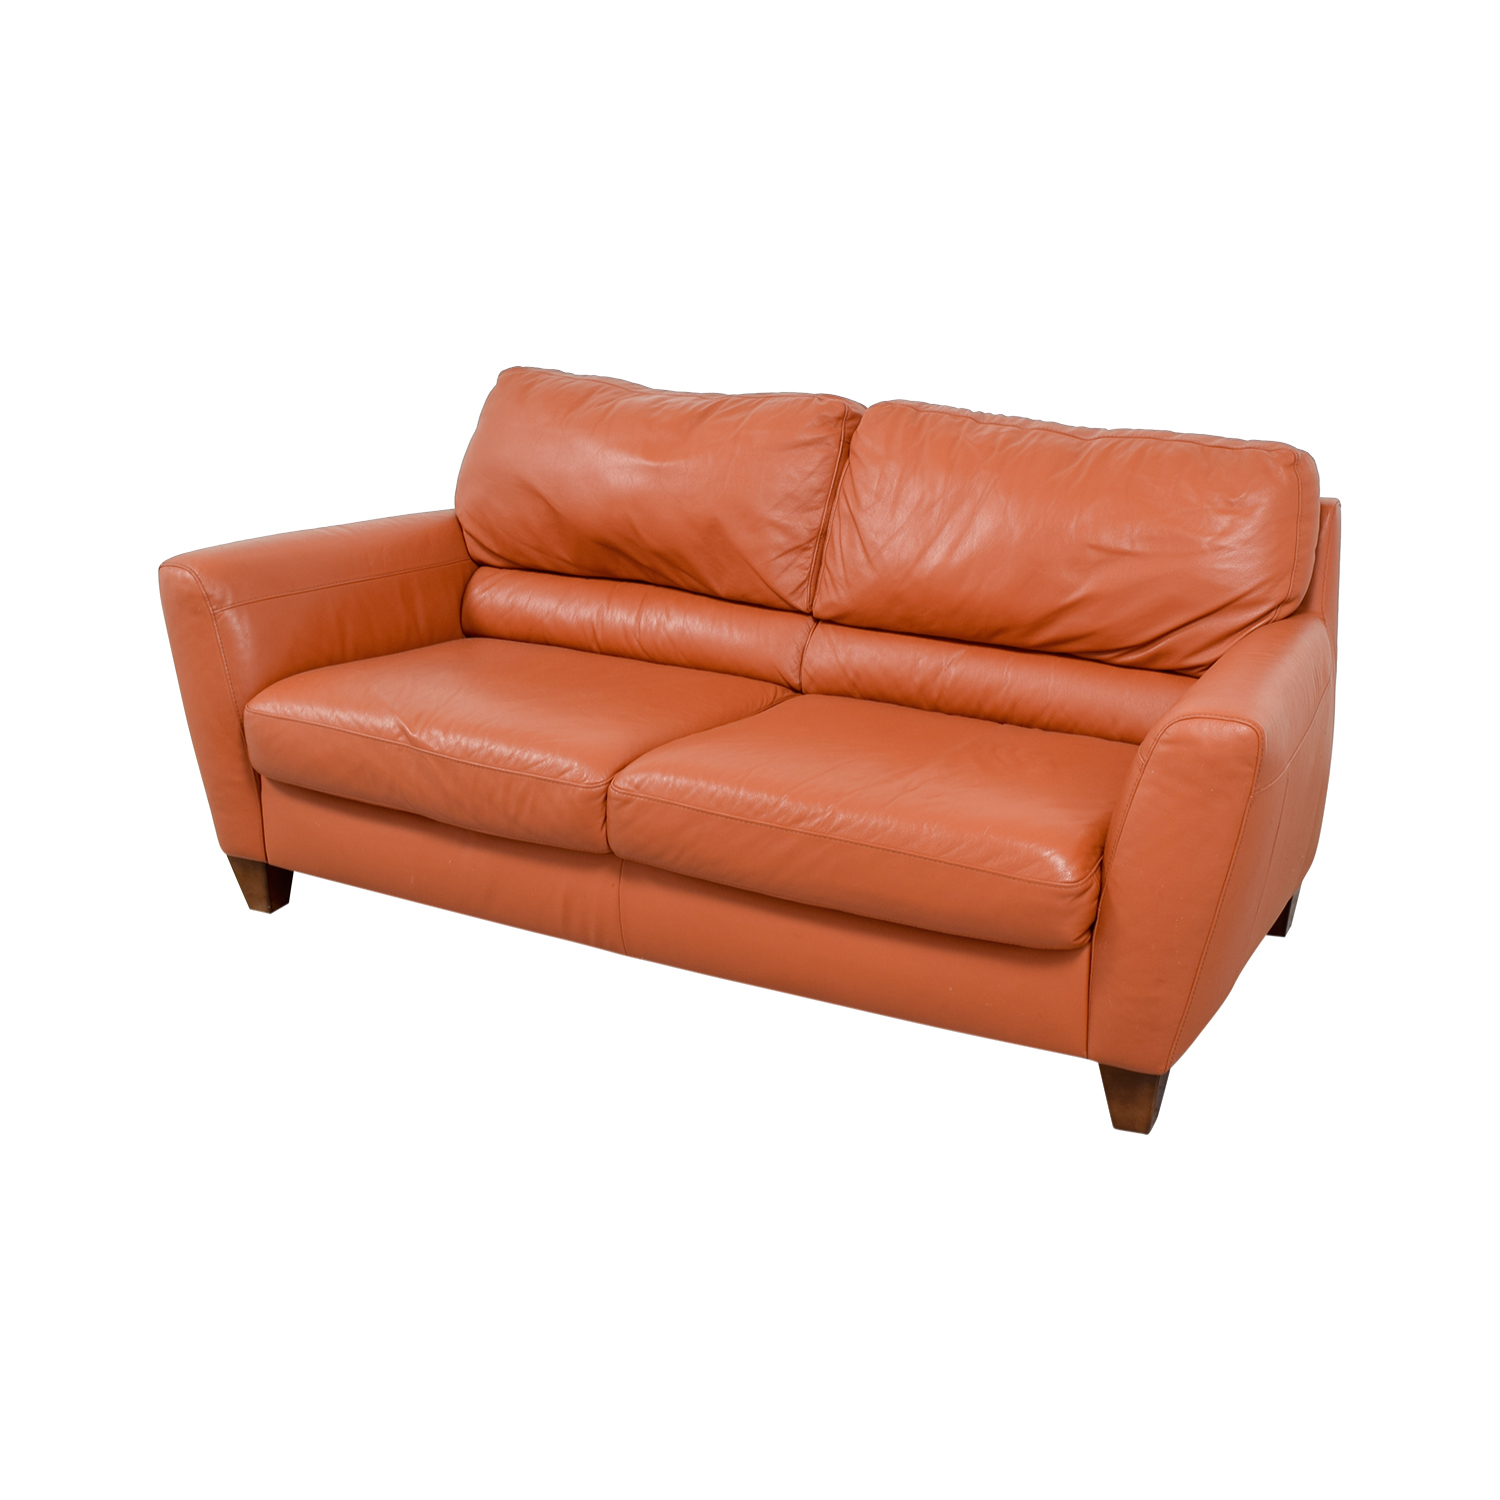 for living stain victorian sofa furniture couch room antique vic style choices best orange li leather burnt simon